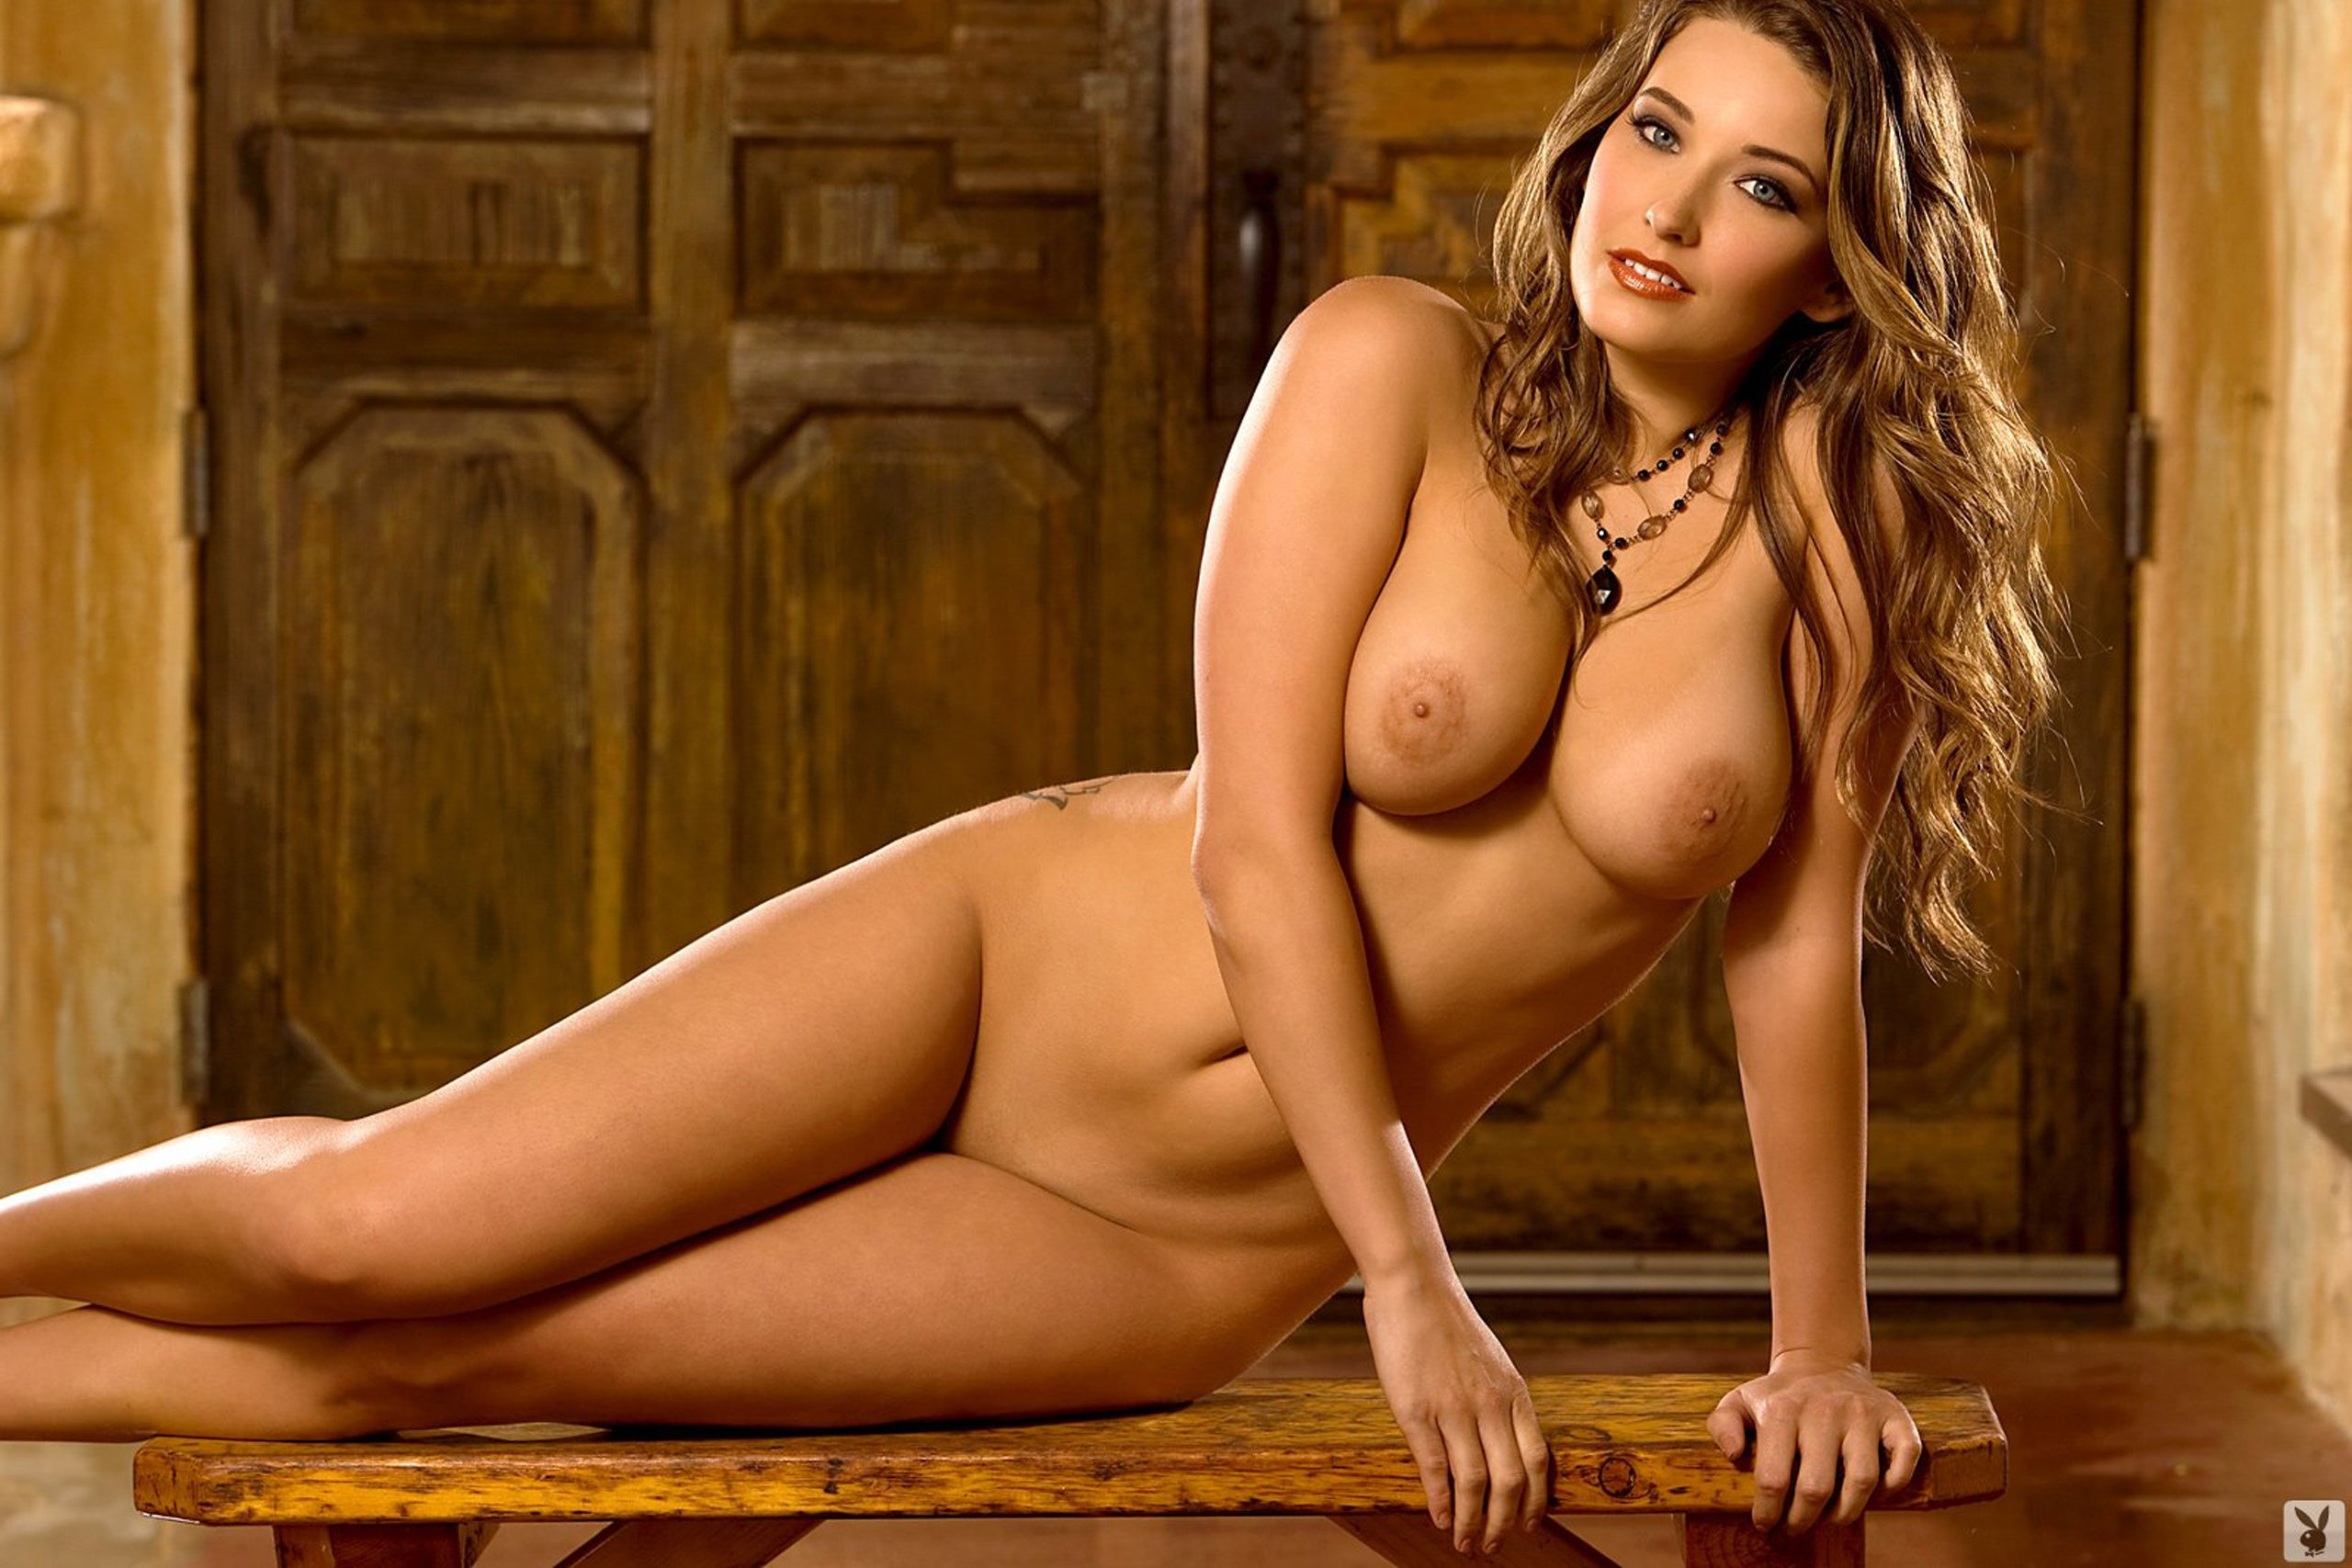 Beautiful women naked scans